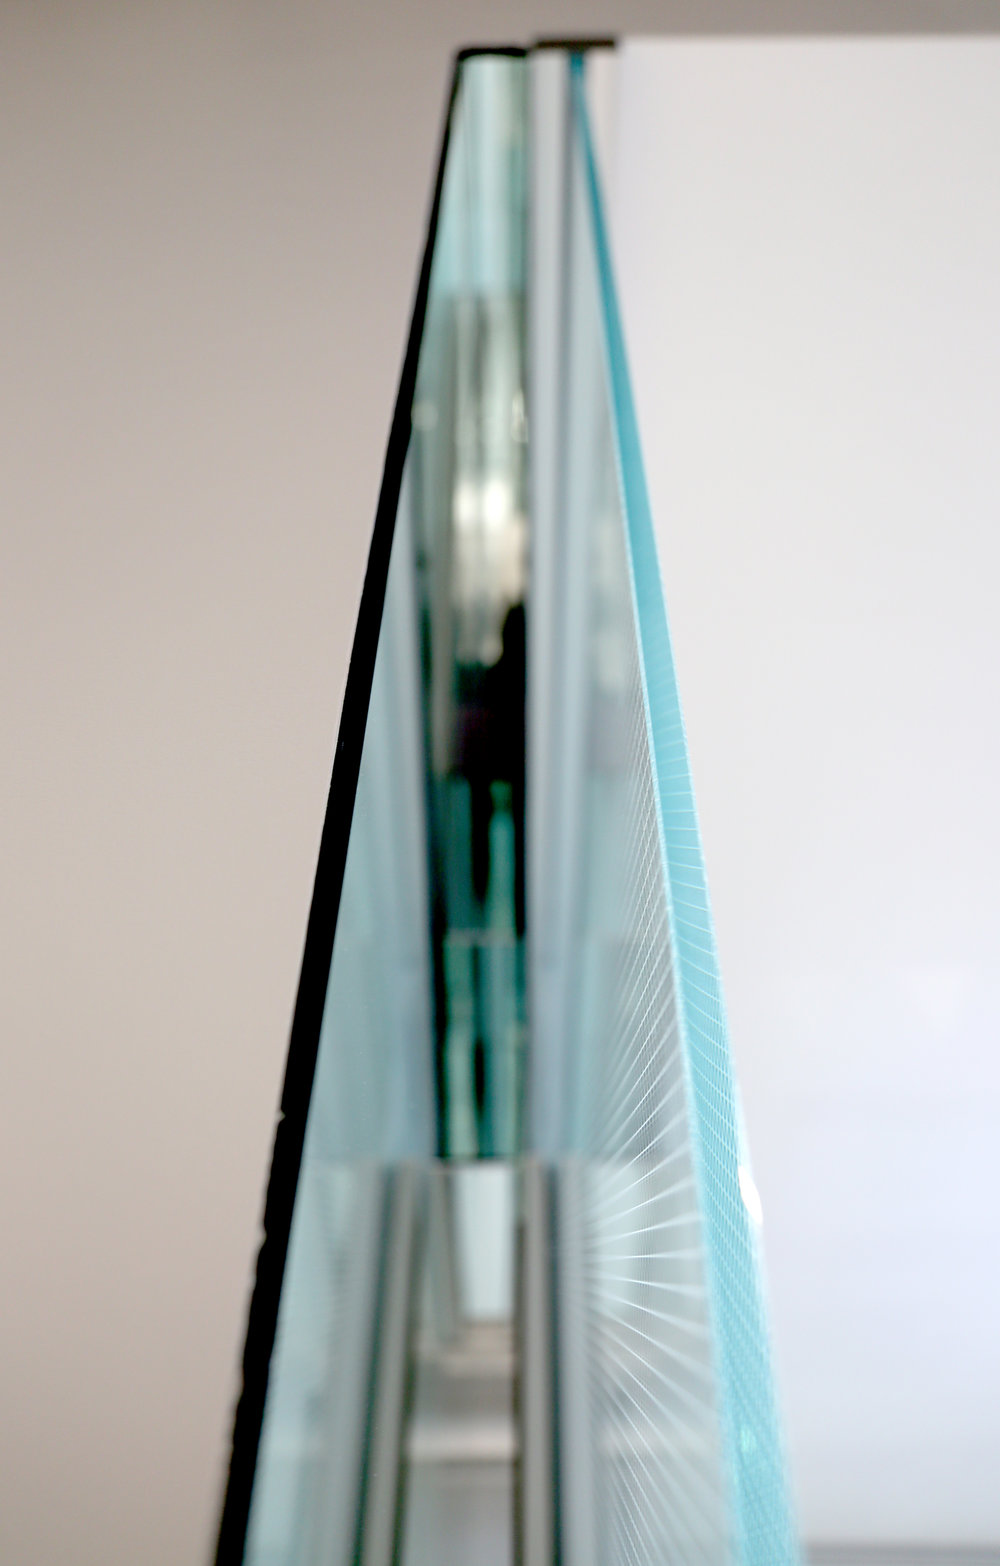 Litespace Specialty Glass Mirror Layered Wall Detail - Spaceworks AI.jpg